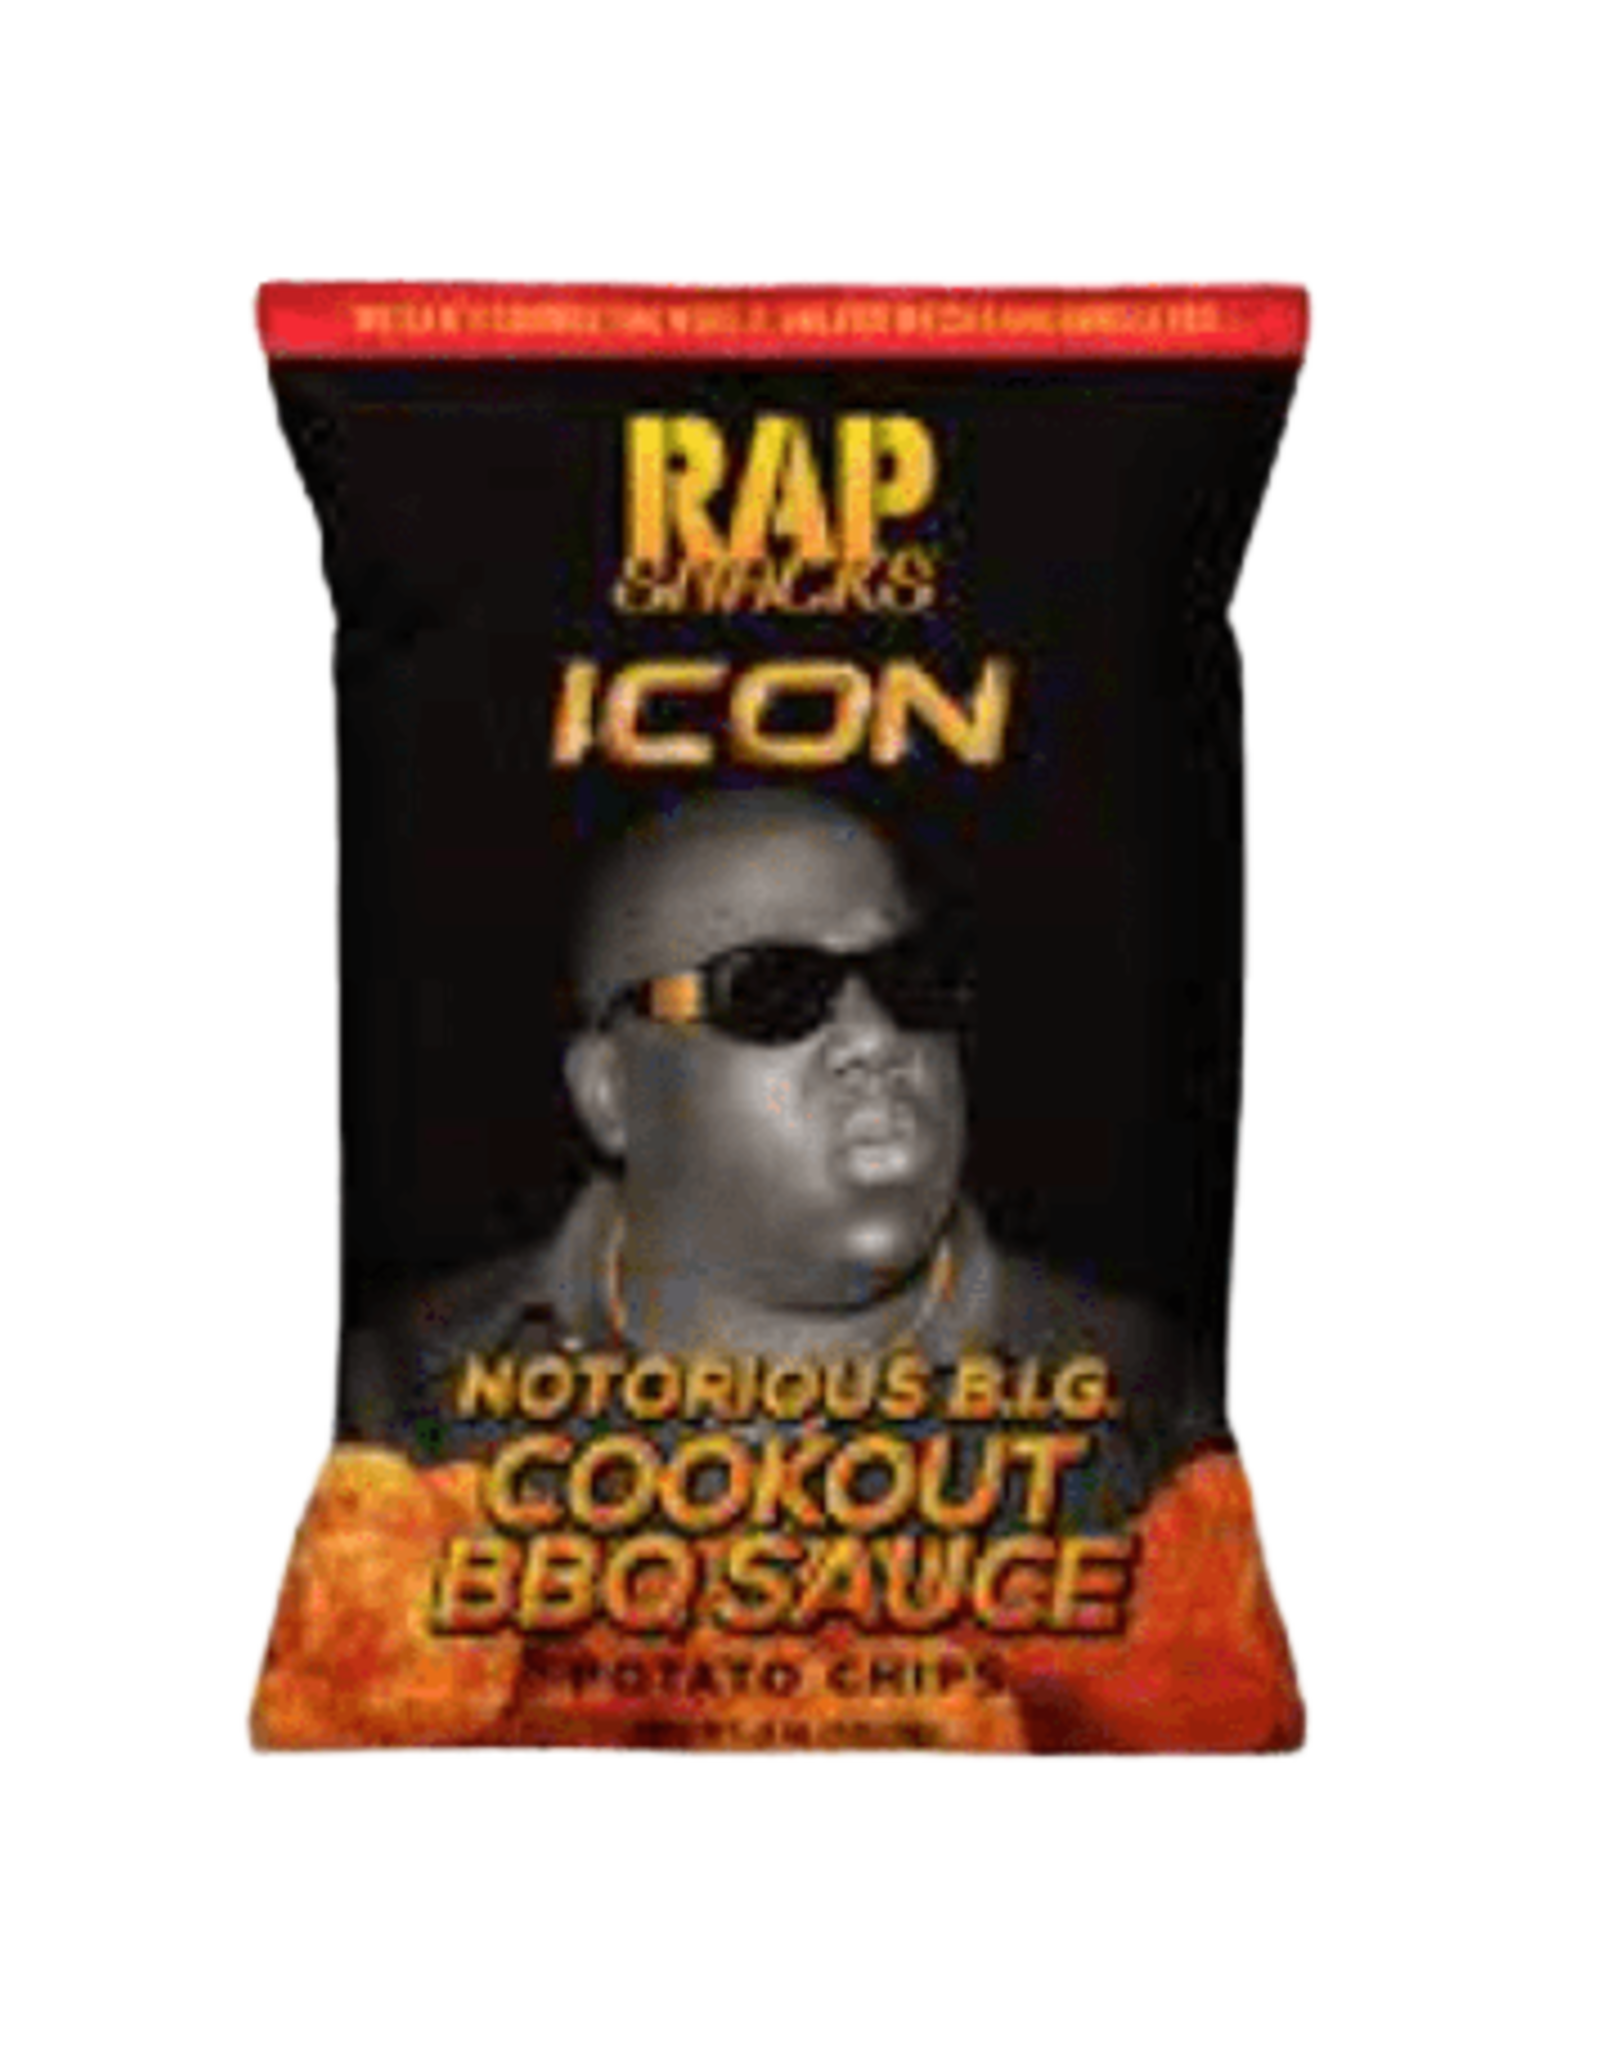 Rap Snacks Cookout BBQ Sauce Chips